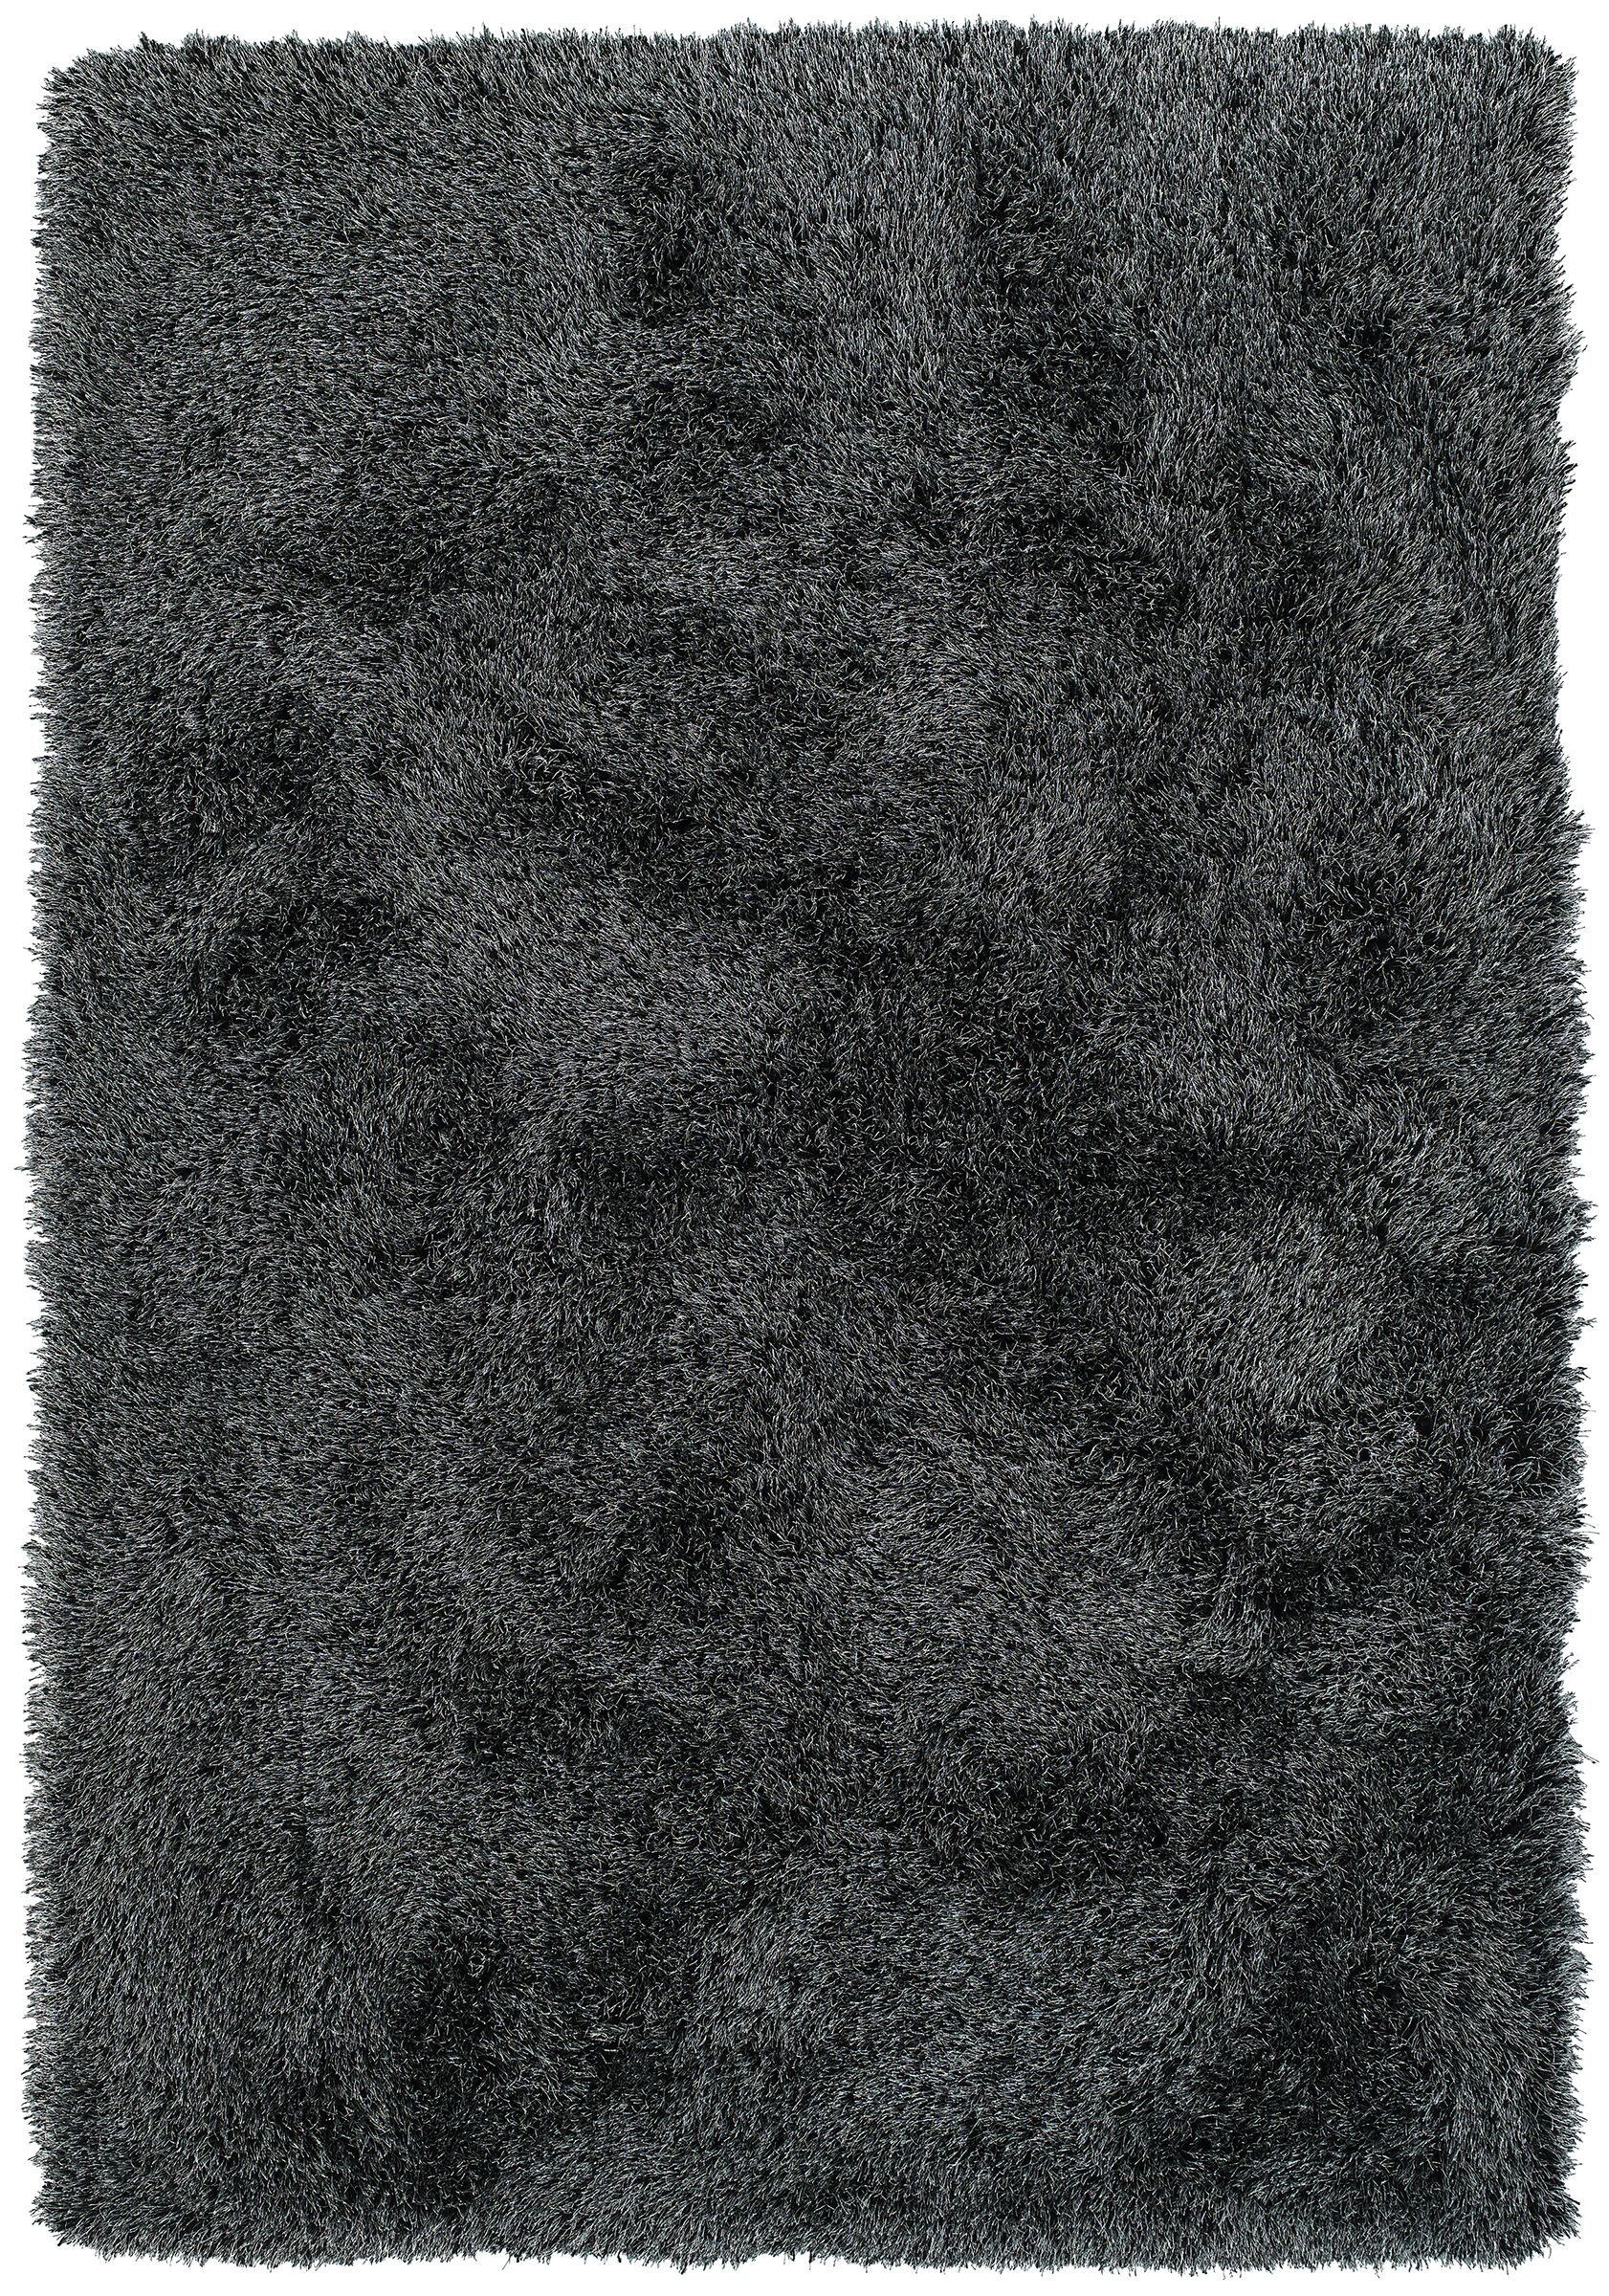 Impact Hand-Tufted Black Area Rug Rug Size: Rectangle 8' x 10'